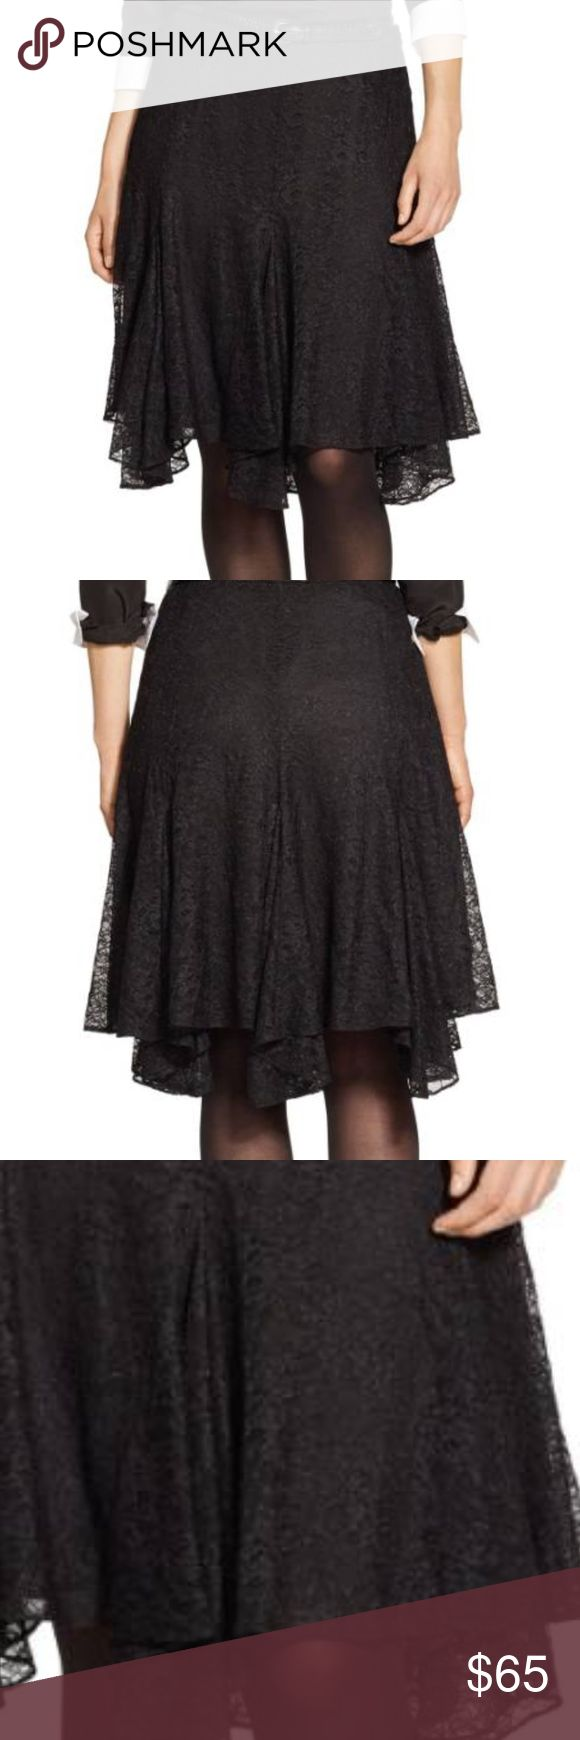 """Lauren Chantilly Lace Handkerchief Plus Skirt Pretty Chantilly lace and a fanciful handkerchief hem bring romantic charm to a flattering skirt that starts out slim at the waist and hips before flaring to a fully, swingy finish. Black Lace  Lined Pleated Skirt perfect for the holidays 24"""" length (size 18W). Hidden side-zip closure. Fully lined. 100% nylon. Lauren Ralph Lauren Skirts Midi"""